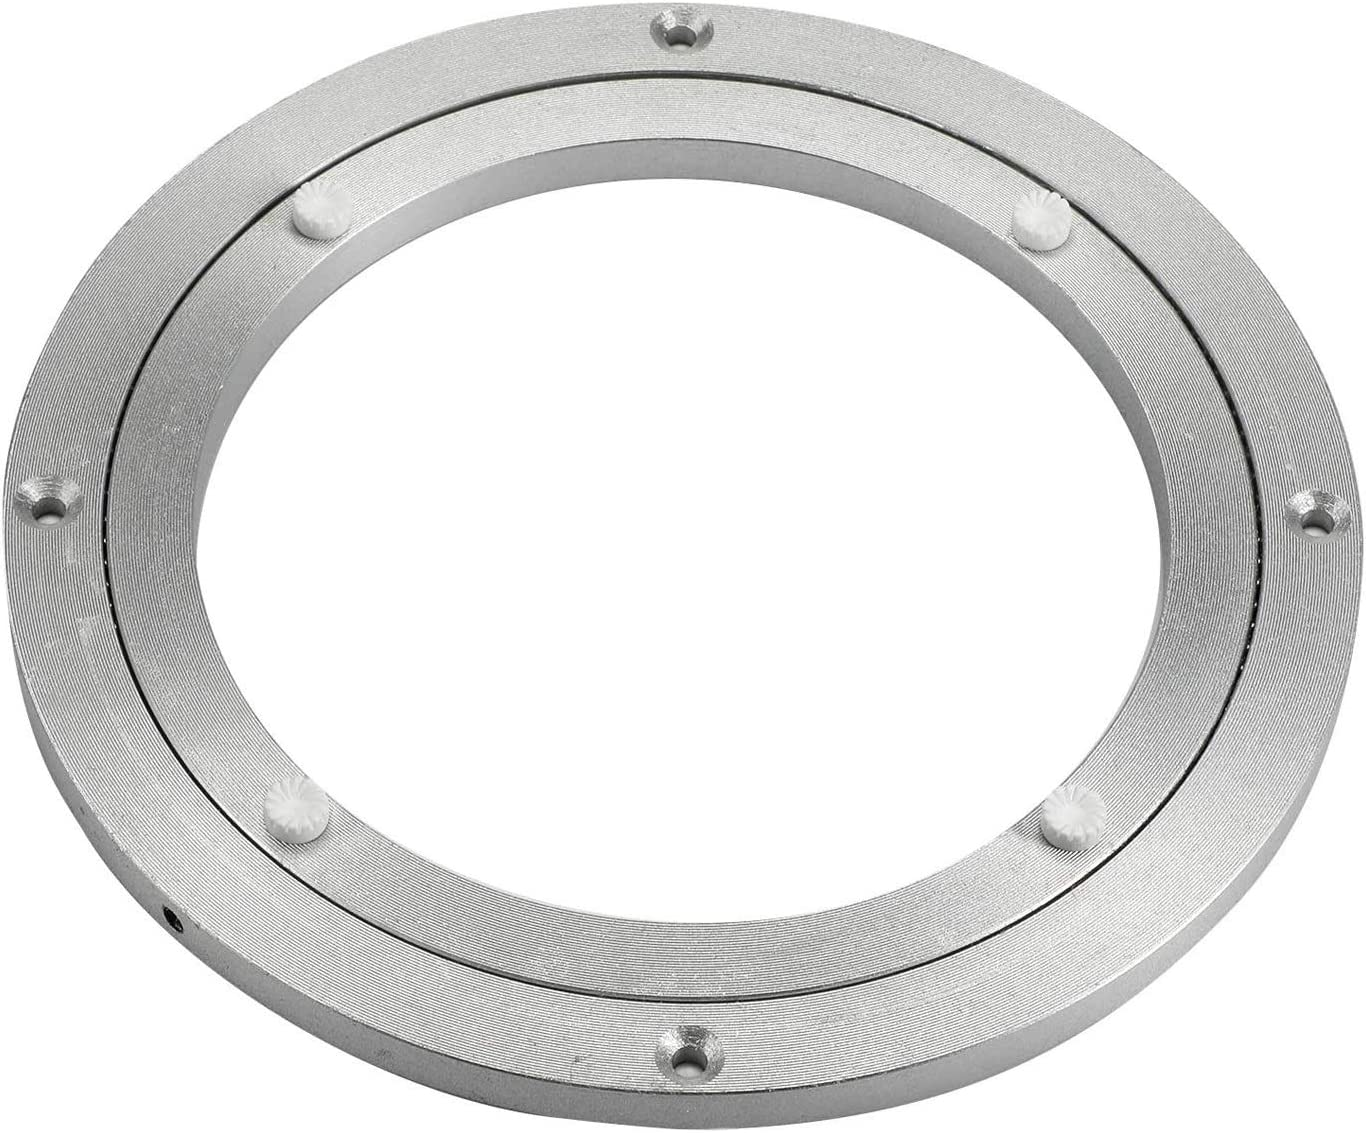 Lazy Susan Ball Bearing 360 Special price for a limited time Degree Heavy Duty Rotating - Turntab New product! New type